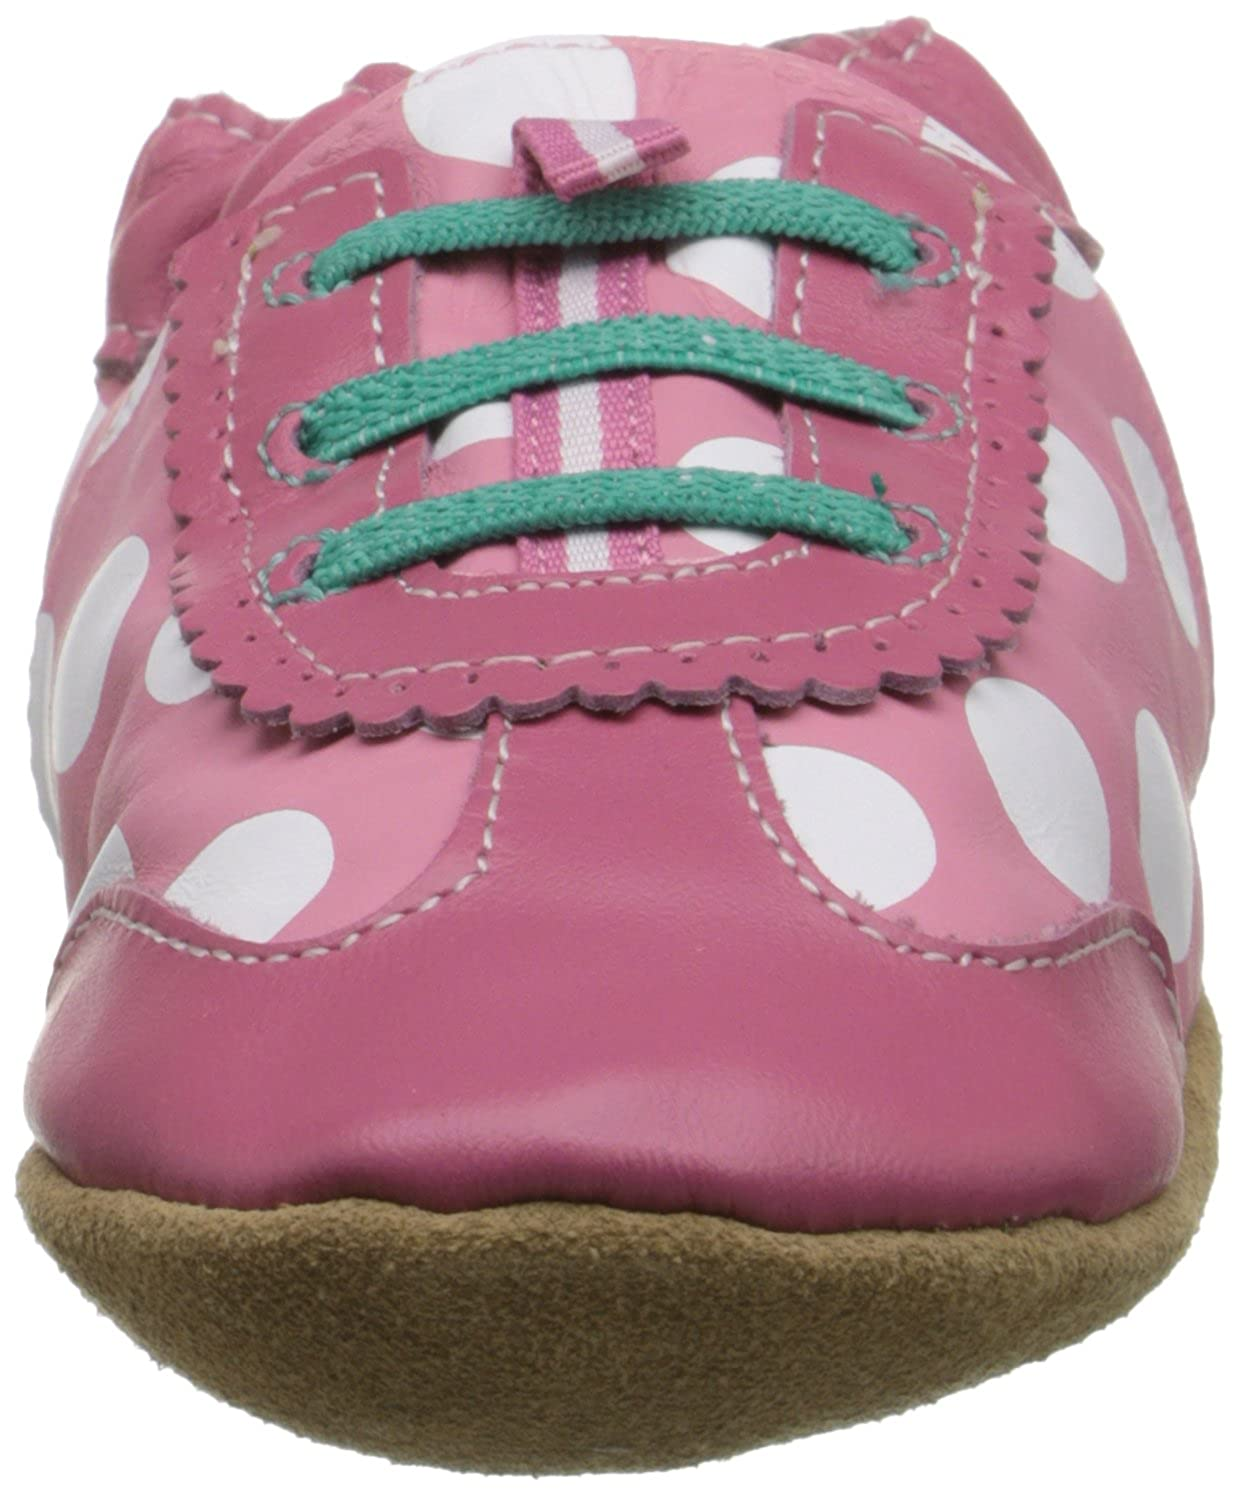 Robeez Dotted Dolly Crib Shoe Infant